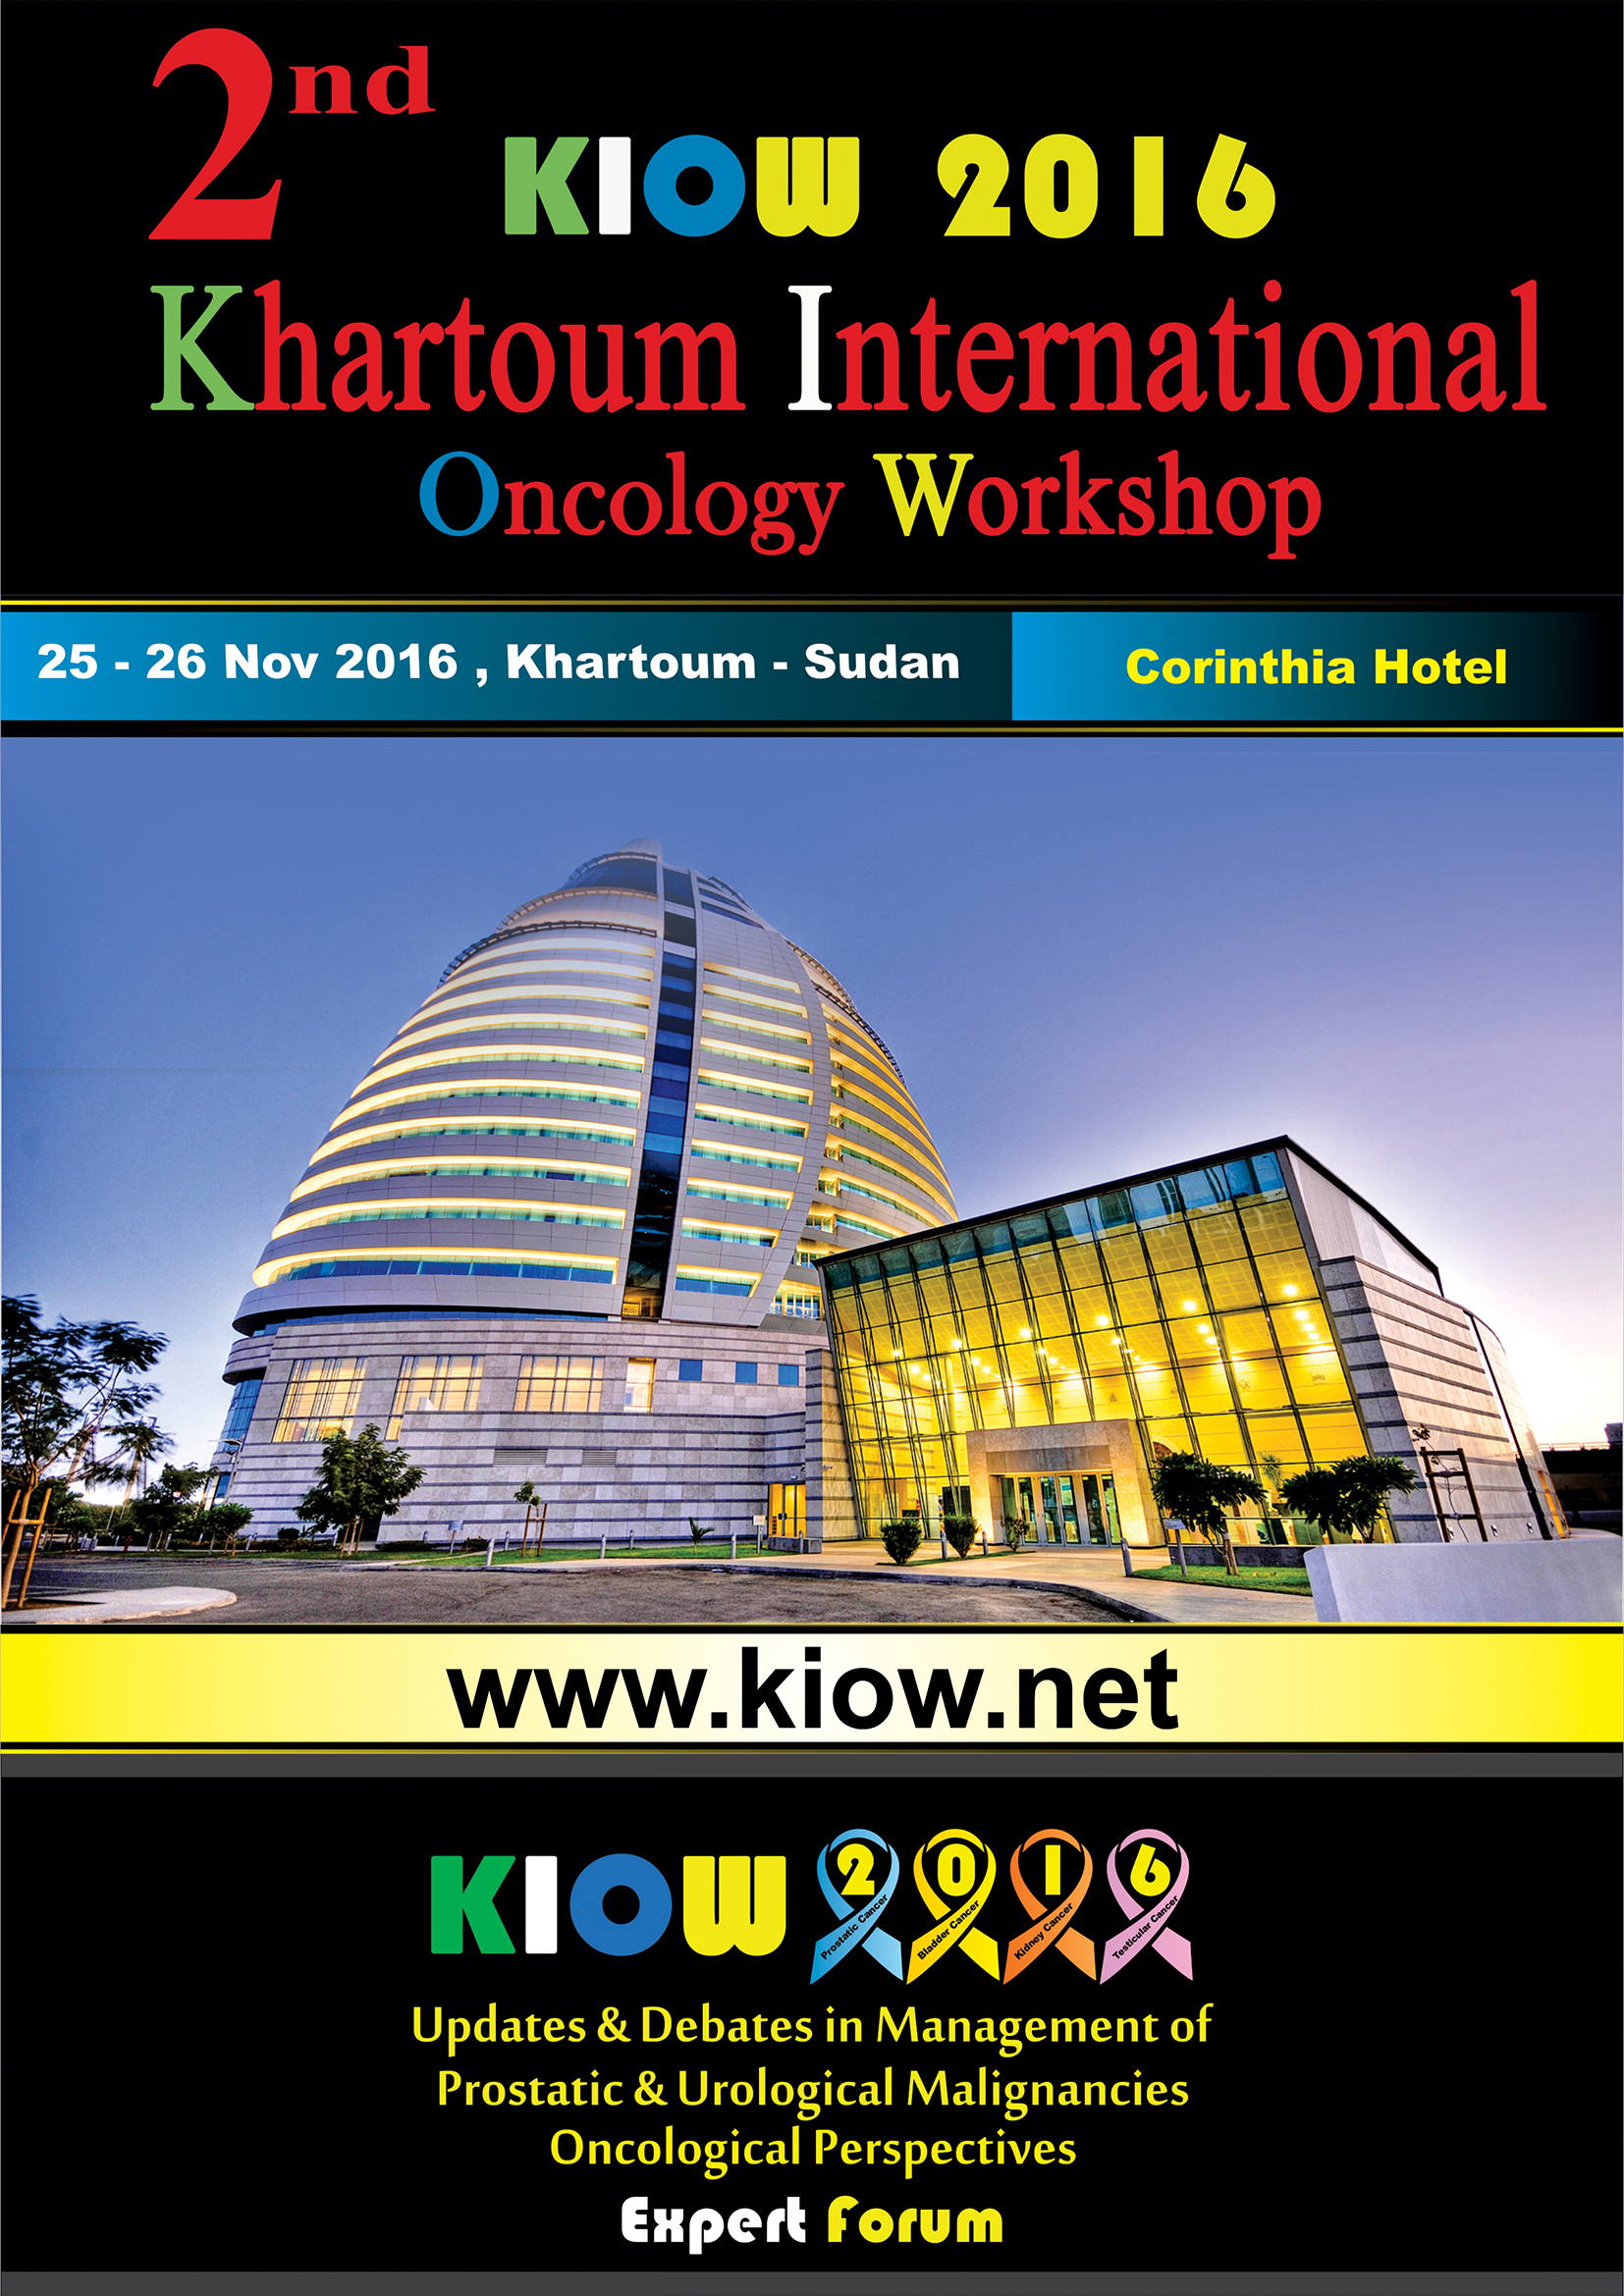 2nd Khartoum International Oncology Workshop